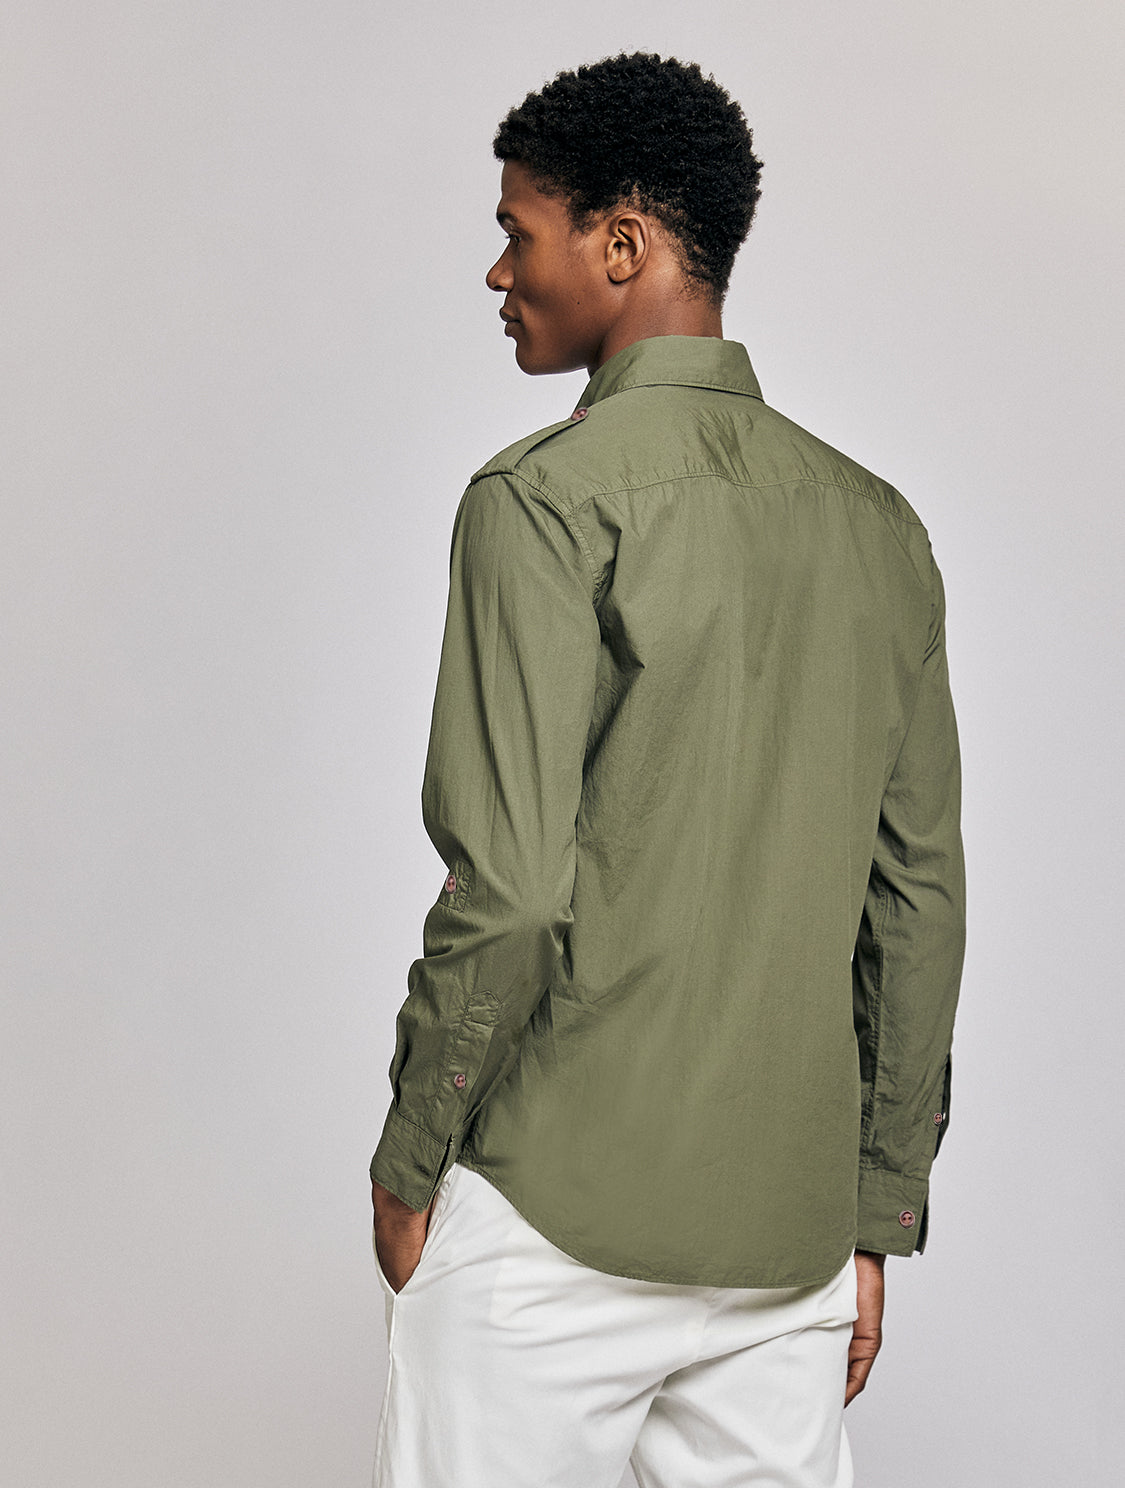 Tropical Cotton Military Shirt